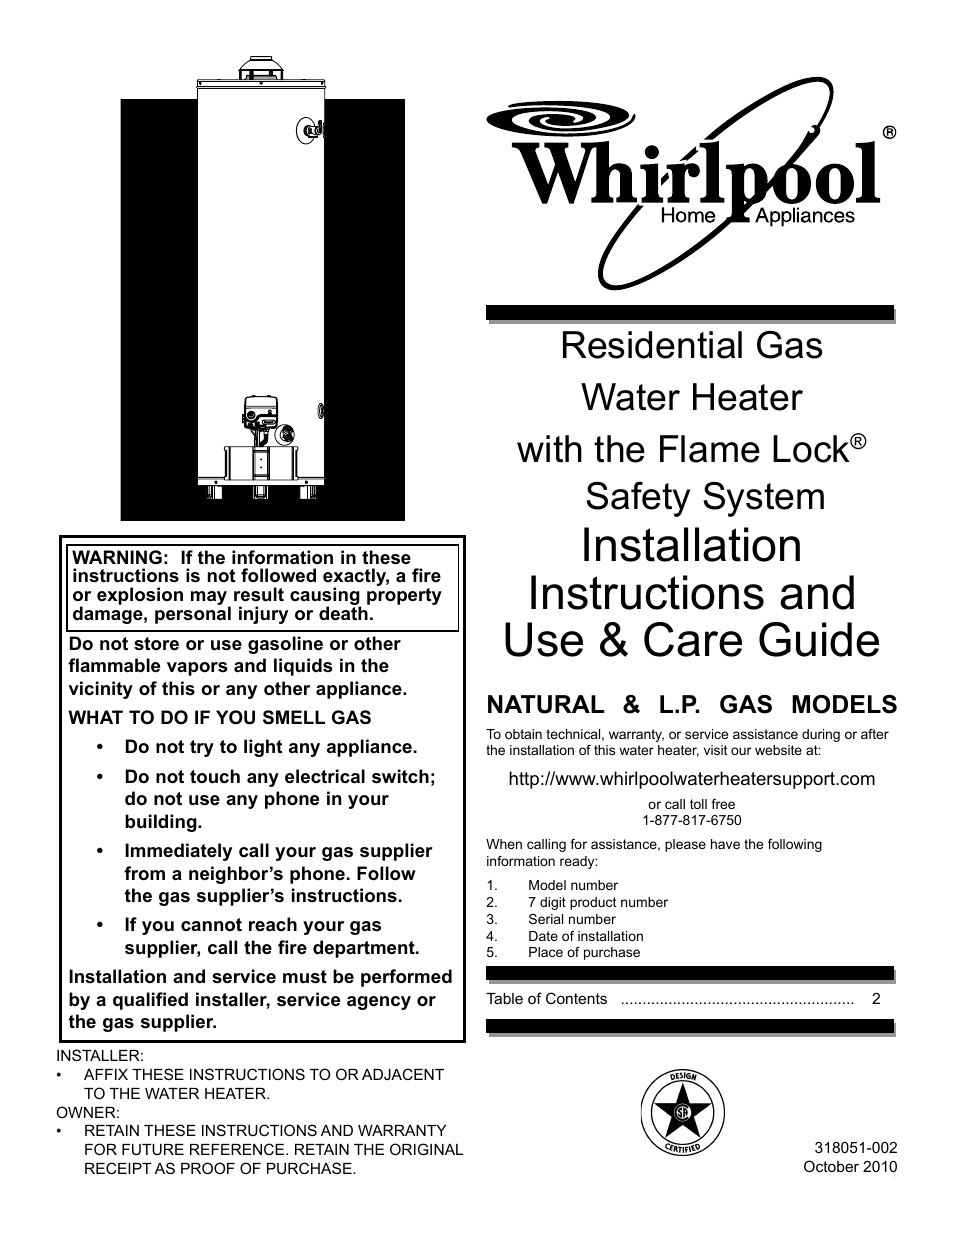 whirlpool residential gas water heater with the flame lock safety rh manualsdir com whirlpool gas water heater troubleshooting whirlpool gas water heater specs